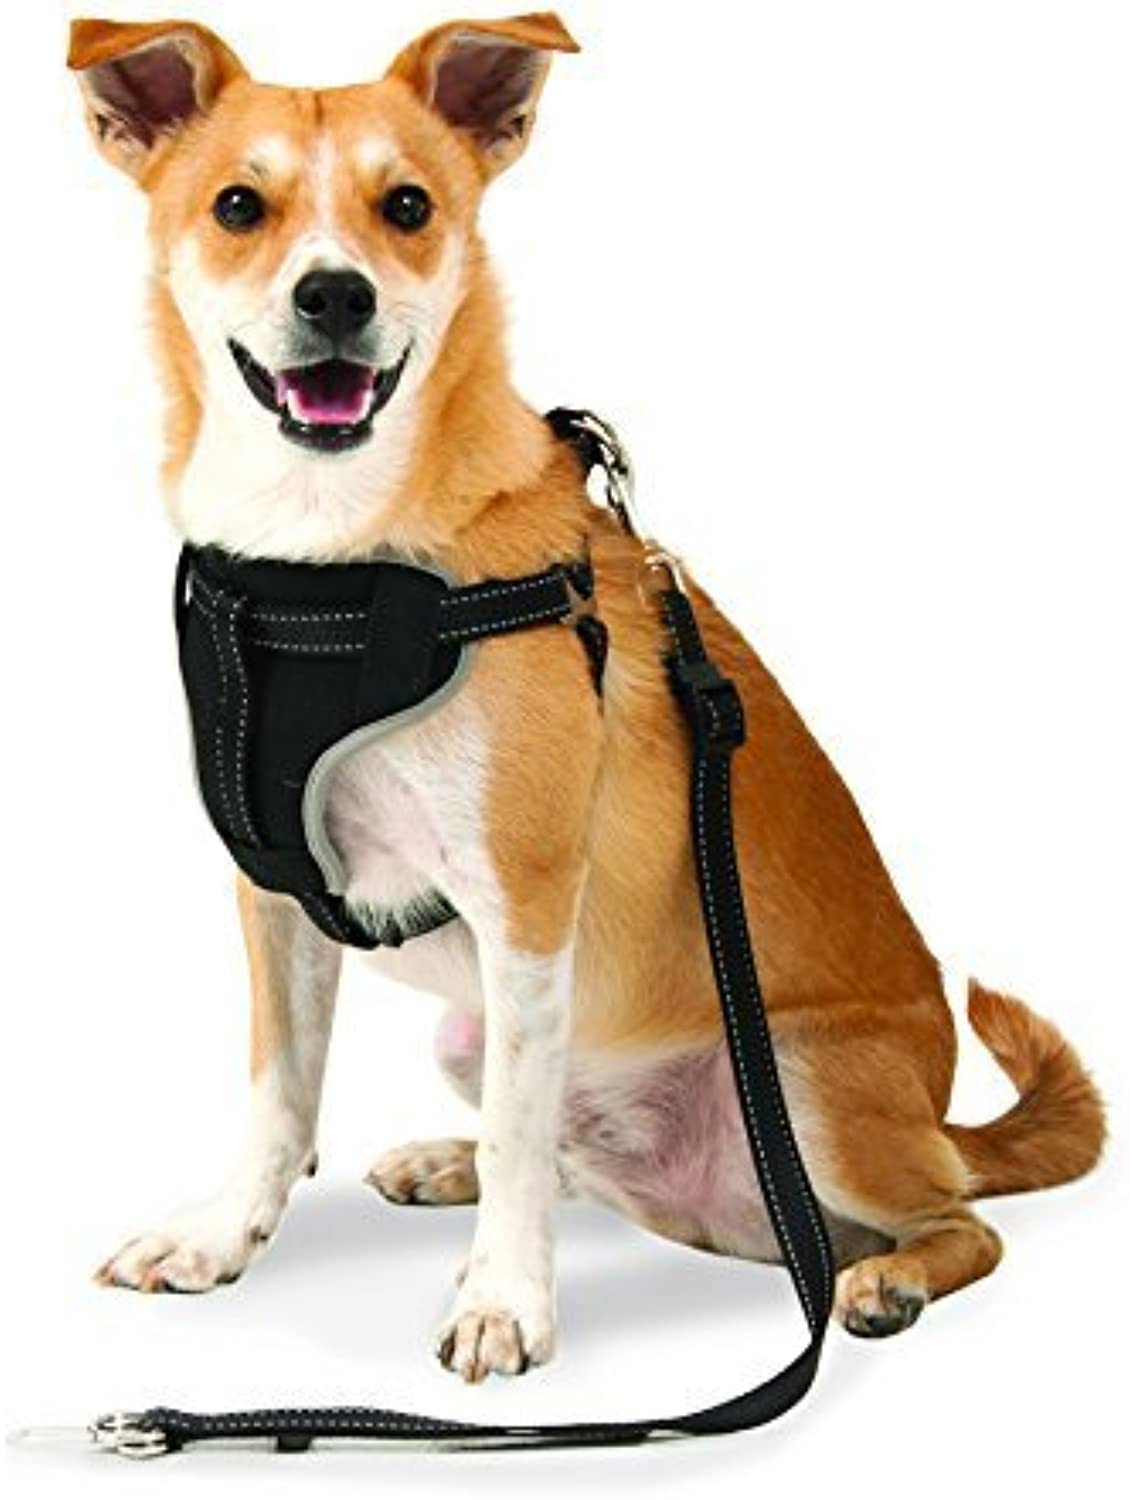 Petmate 11477 The Ultimate Travel Harness for Pets, Medium, Black by Doskocil